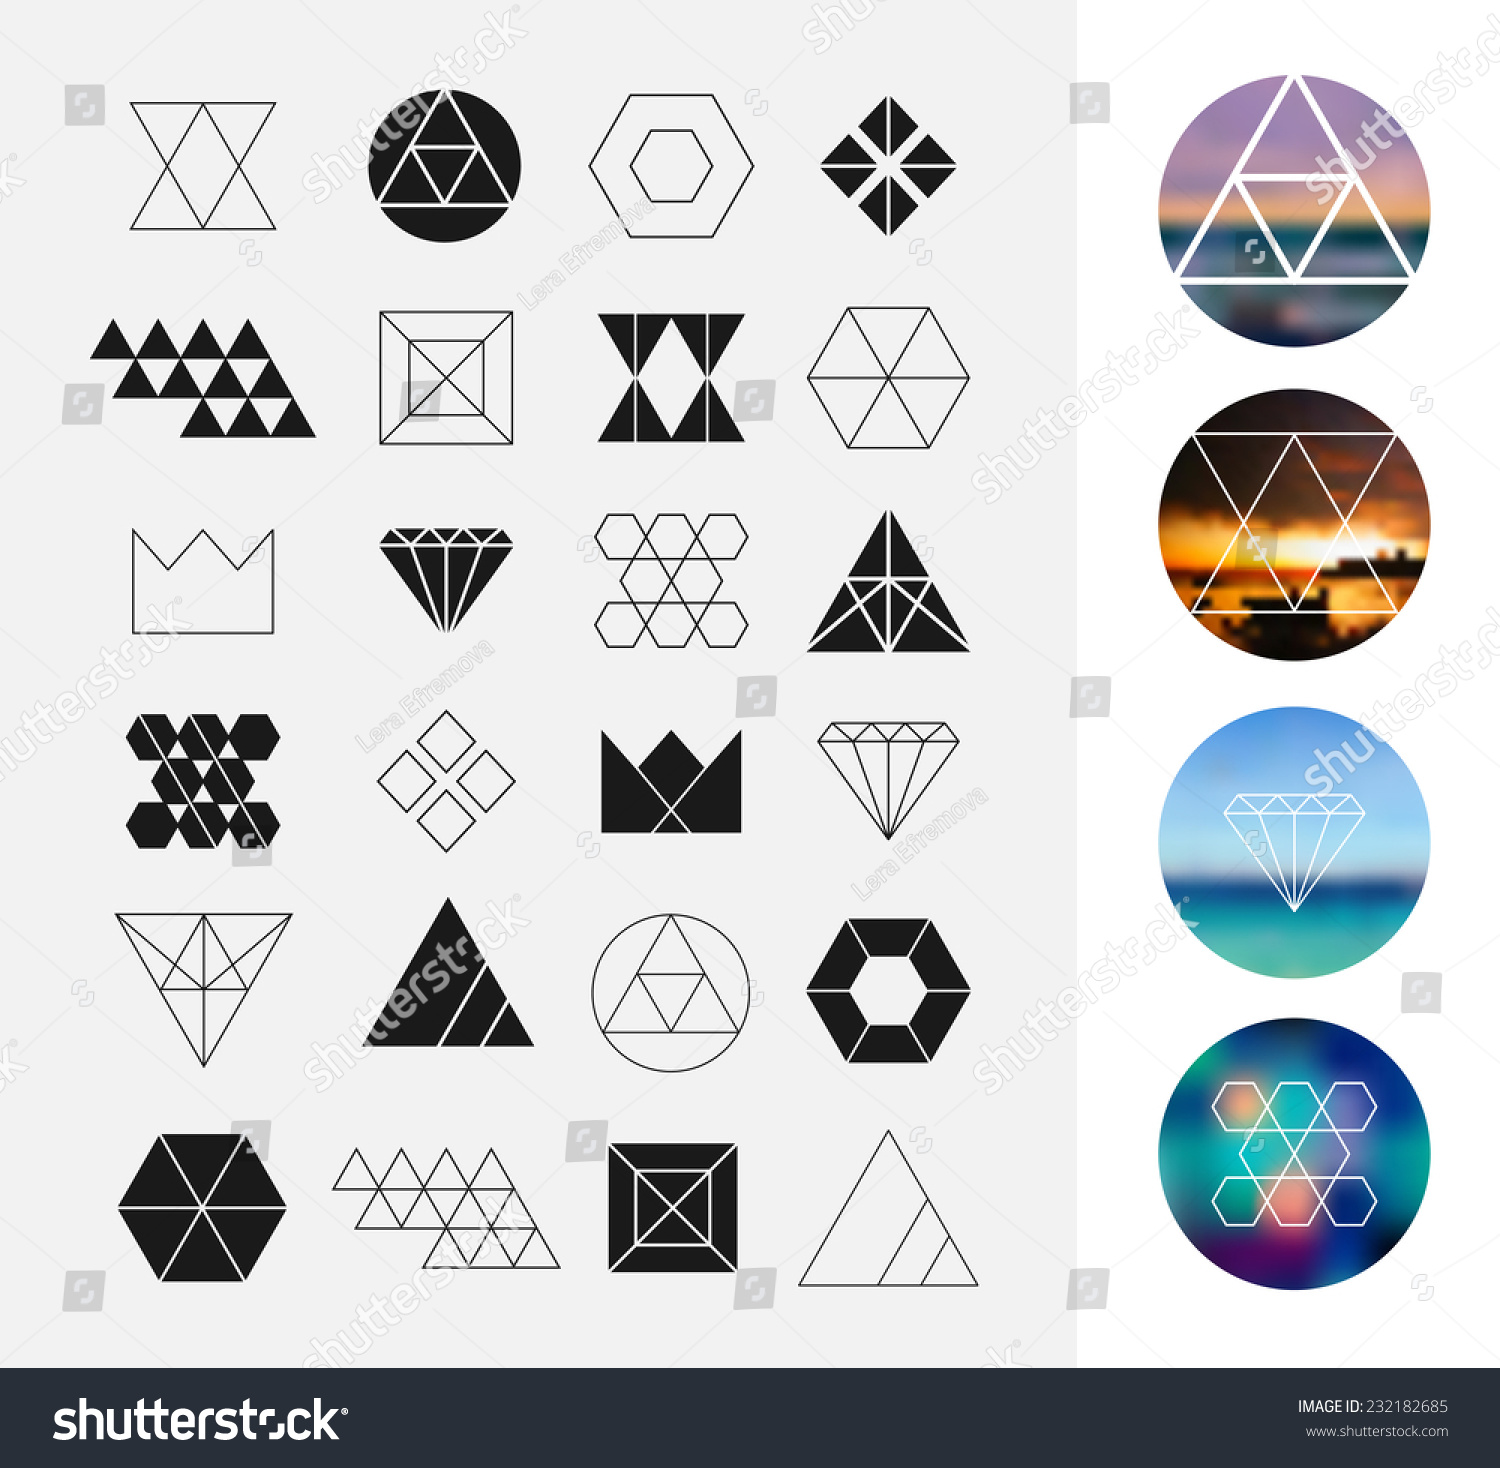 Worksheet Shapes Geometry set geometric shapes hipster retro backgrounds stock vector of and logotypes